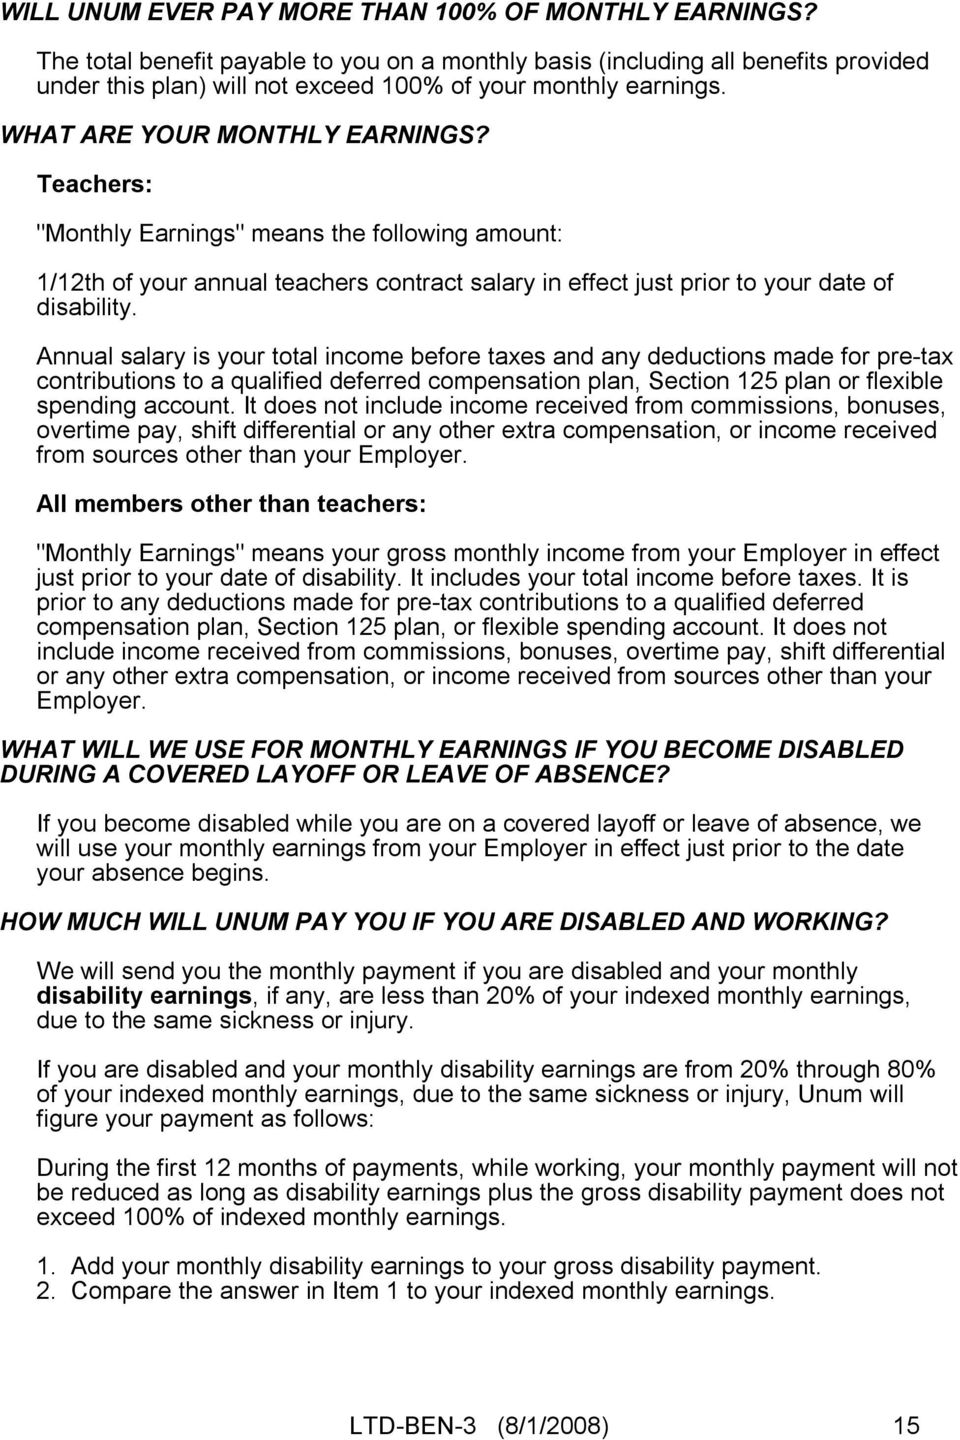 "Teachers: ""Monthly Earnings"" means the following amount: 1/12th of your annual teachers contract salary in effect just prior to your date of disability."